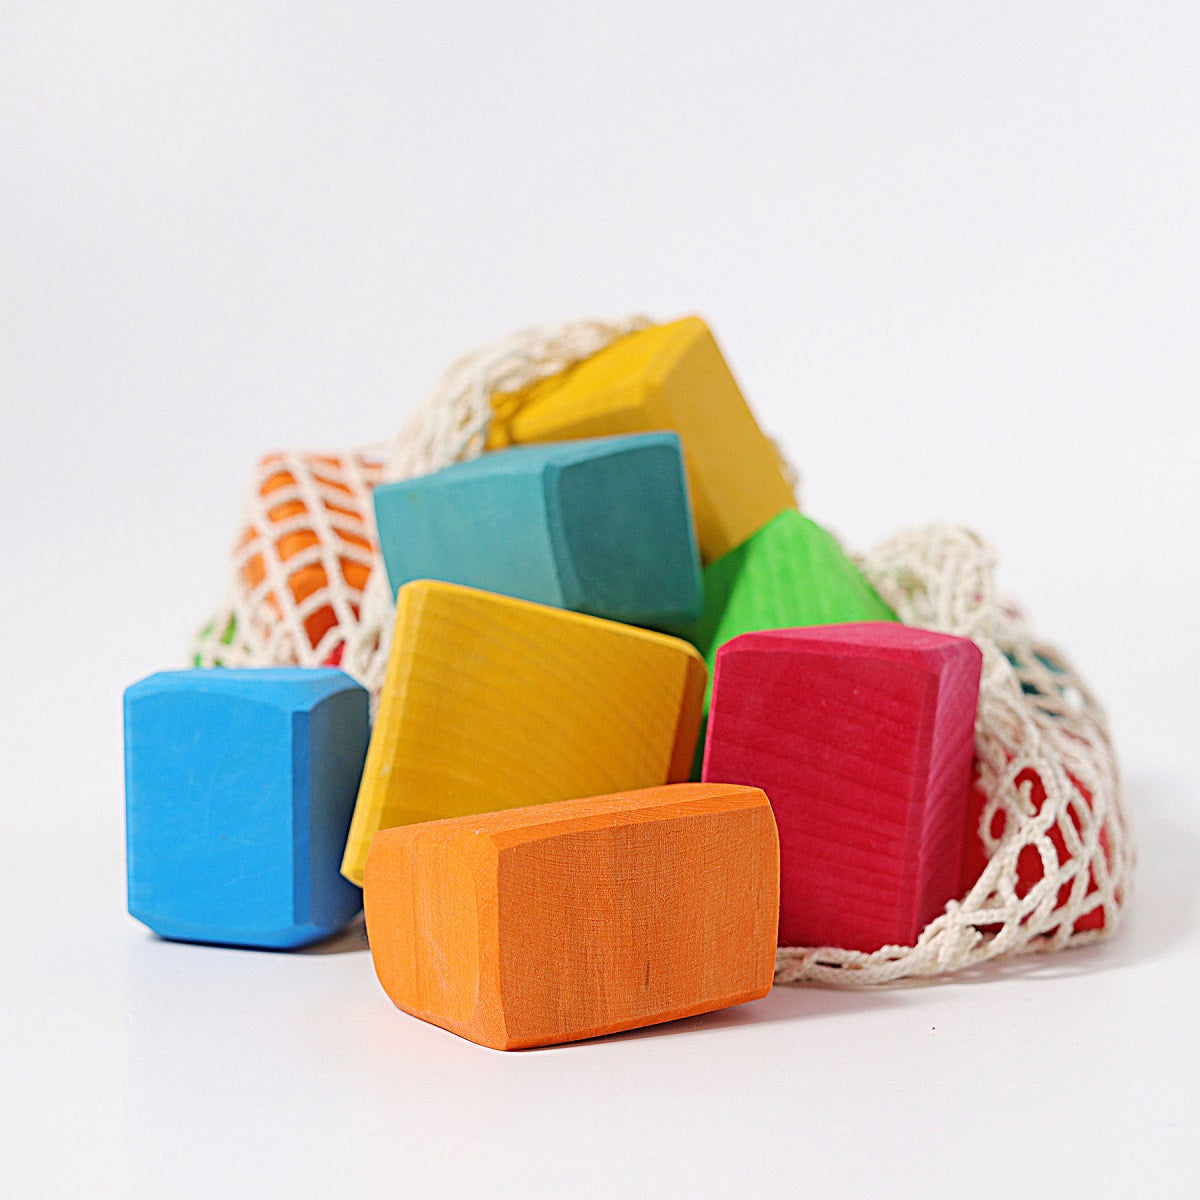 a bag of colourful wooden blocks in a net bag in a white setting.